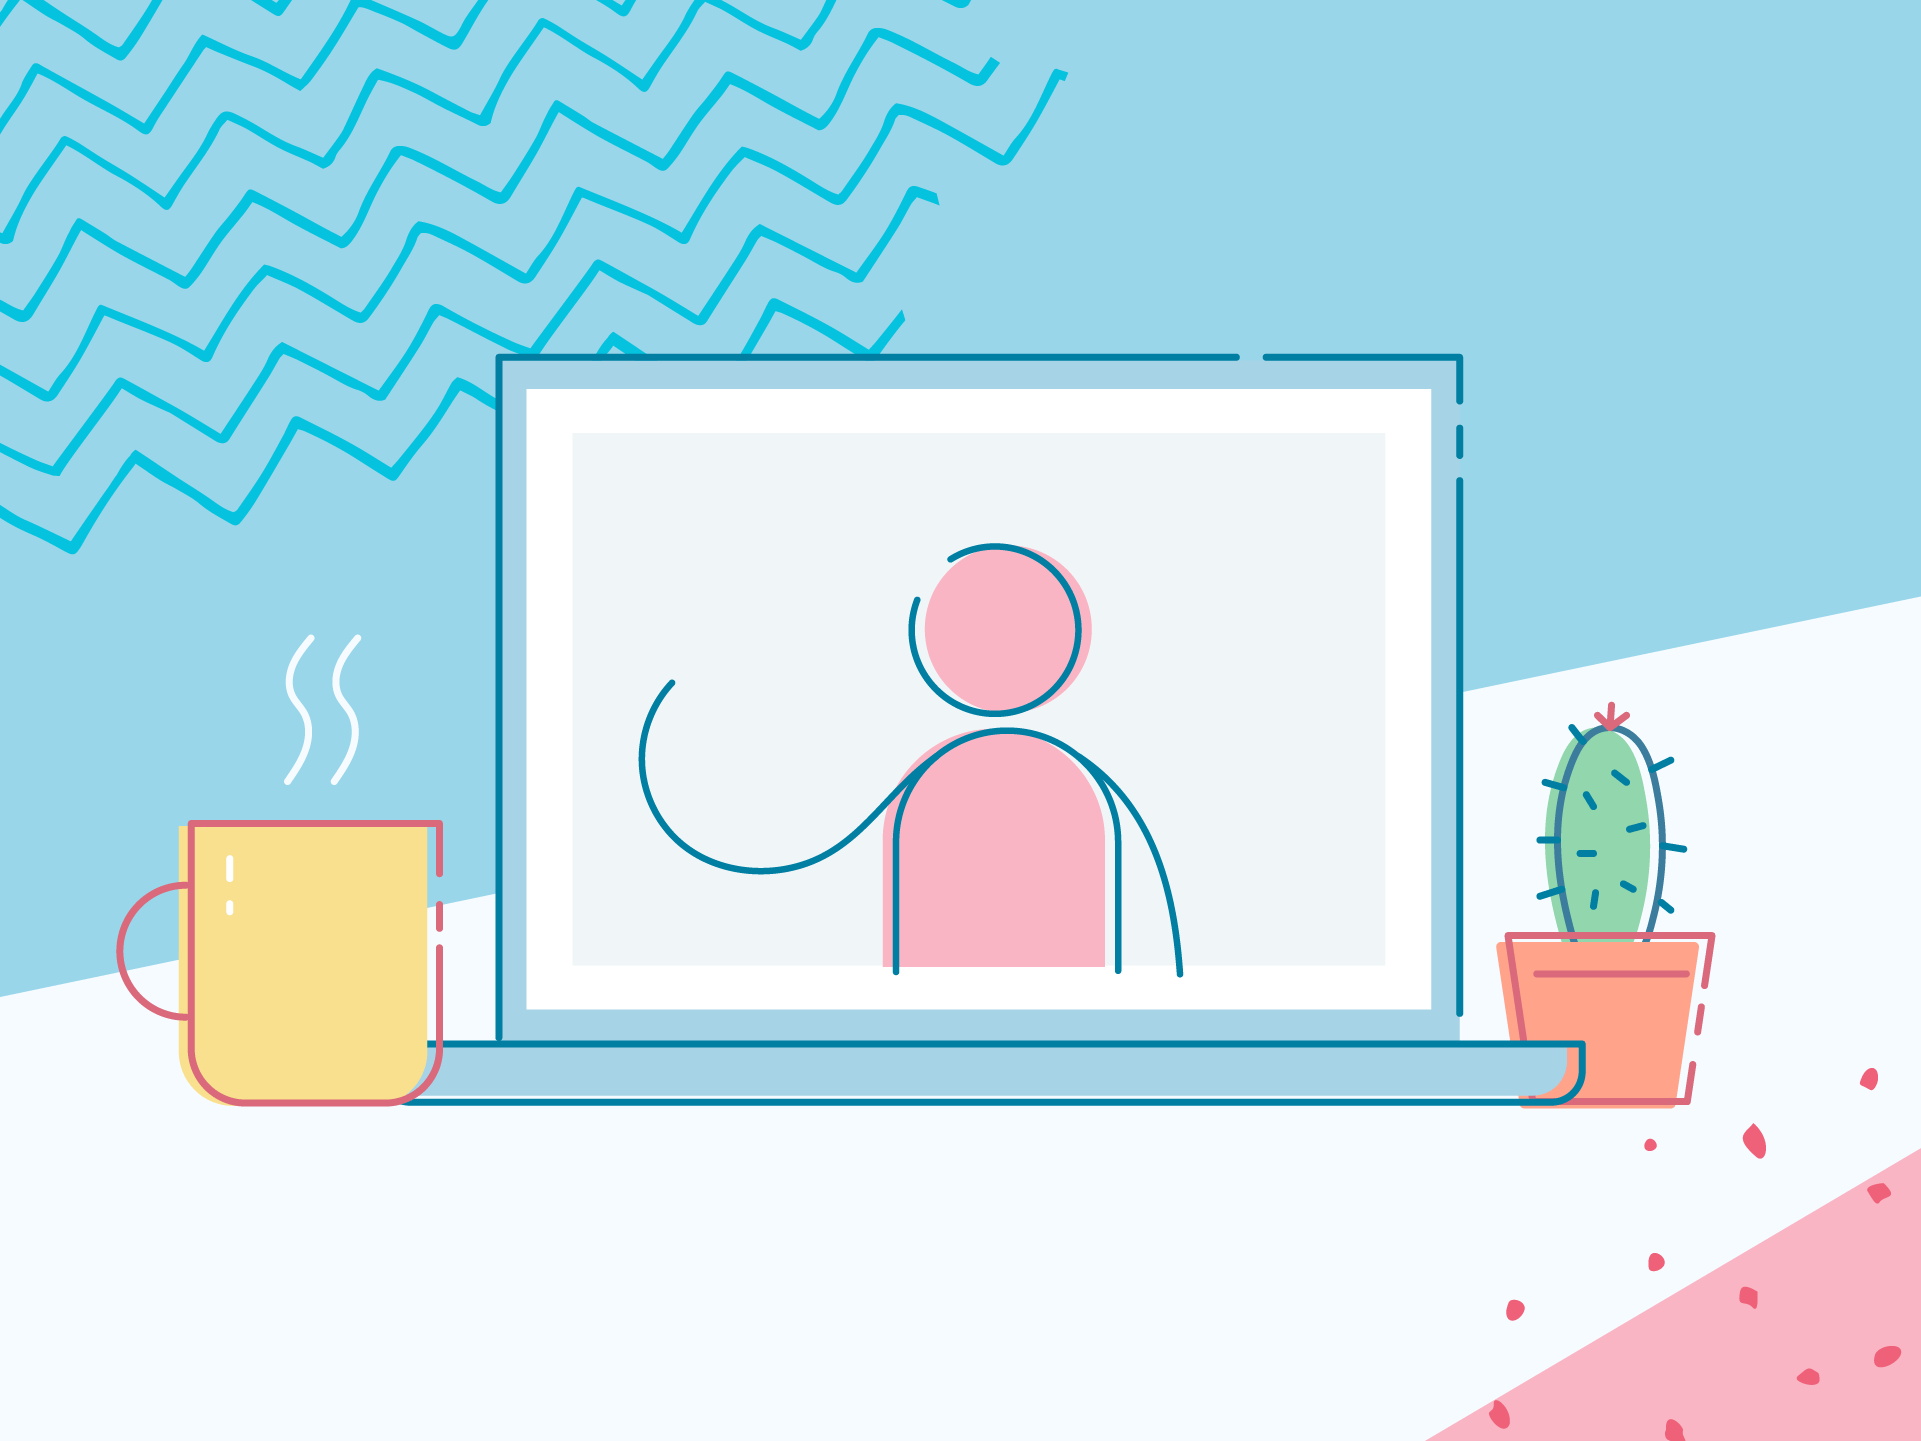 Illustration of a telehealth call on a laptop with a coffee mug and cactus